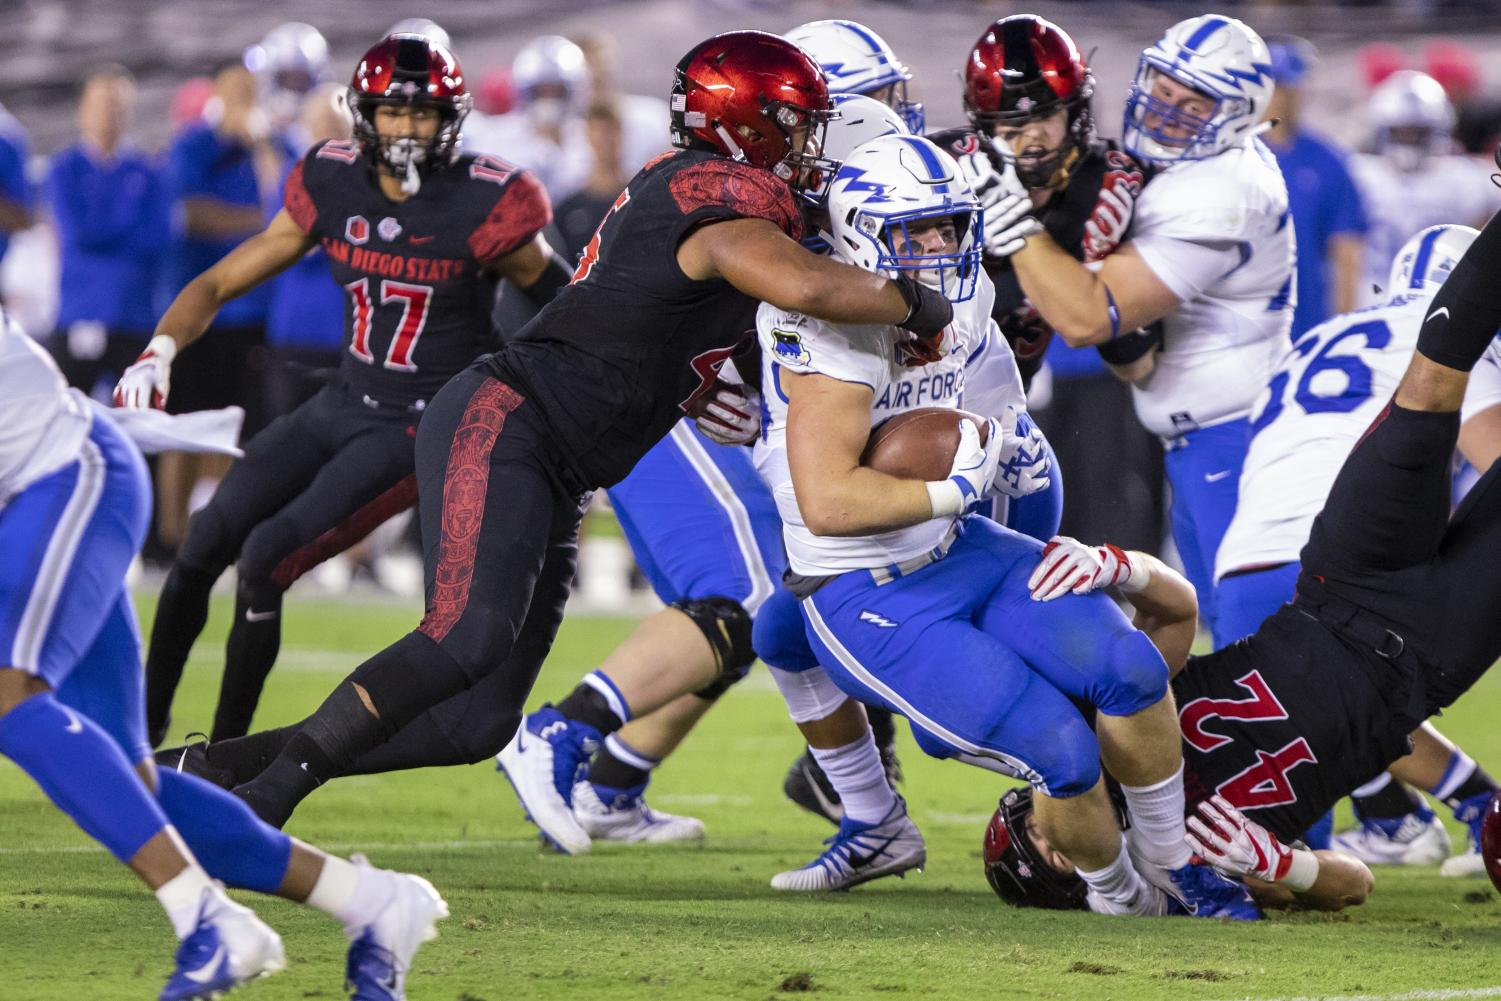 Senior defensive lineman Anthony Luke takes down an Air Force ball carrier on Oct. 12 at SDCCU Stadium.